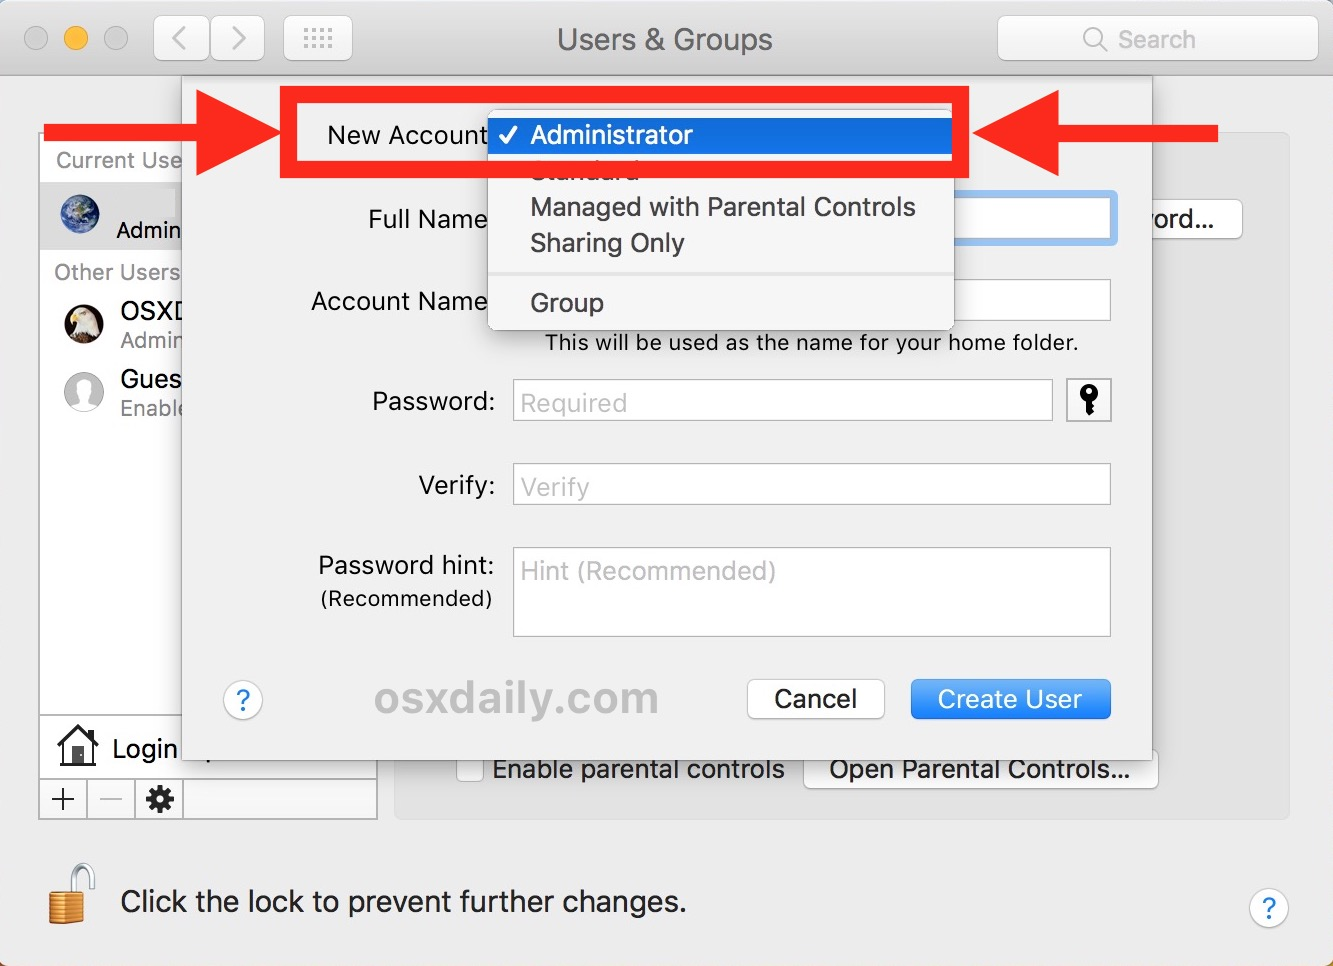 Choose to create a new admin account